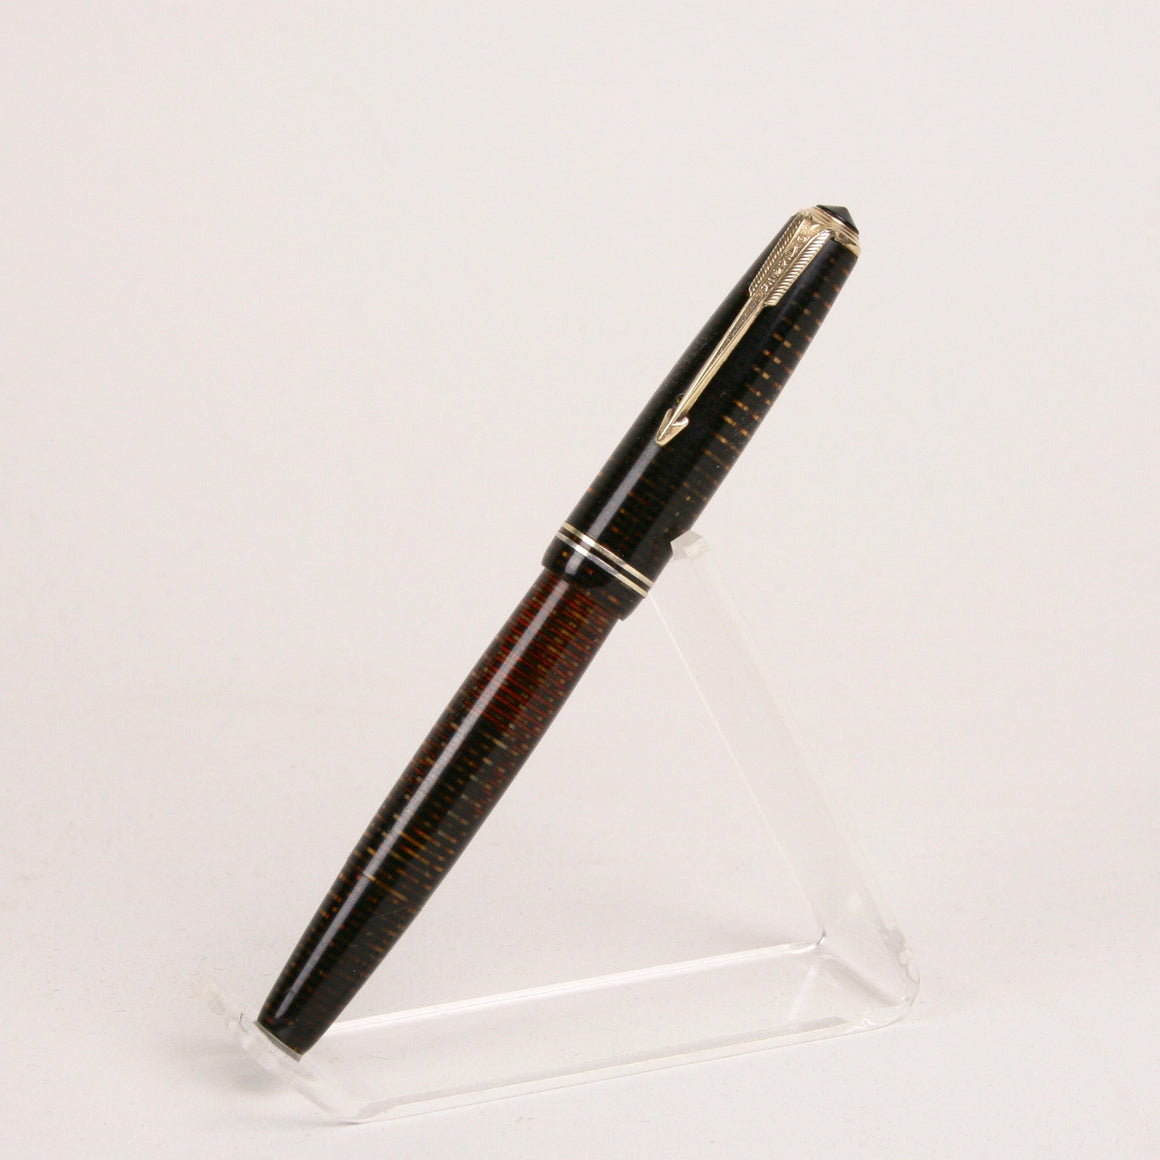 Parker Vacumatic Fountain Pen in Golden Pearl, Fine Gold Arrow Nib,Restored and Tested